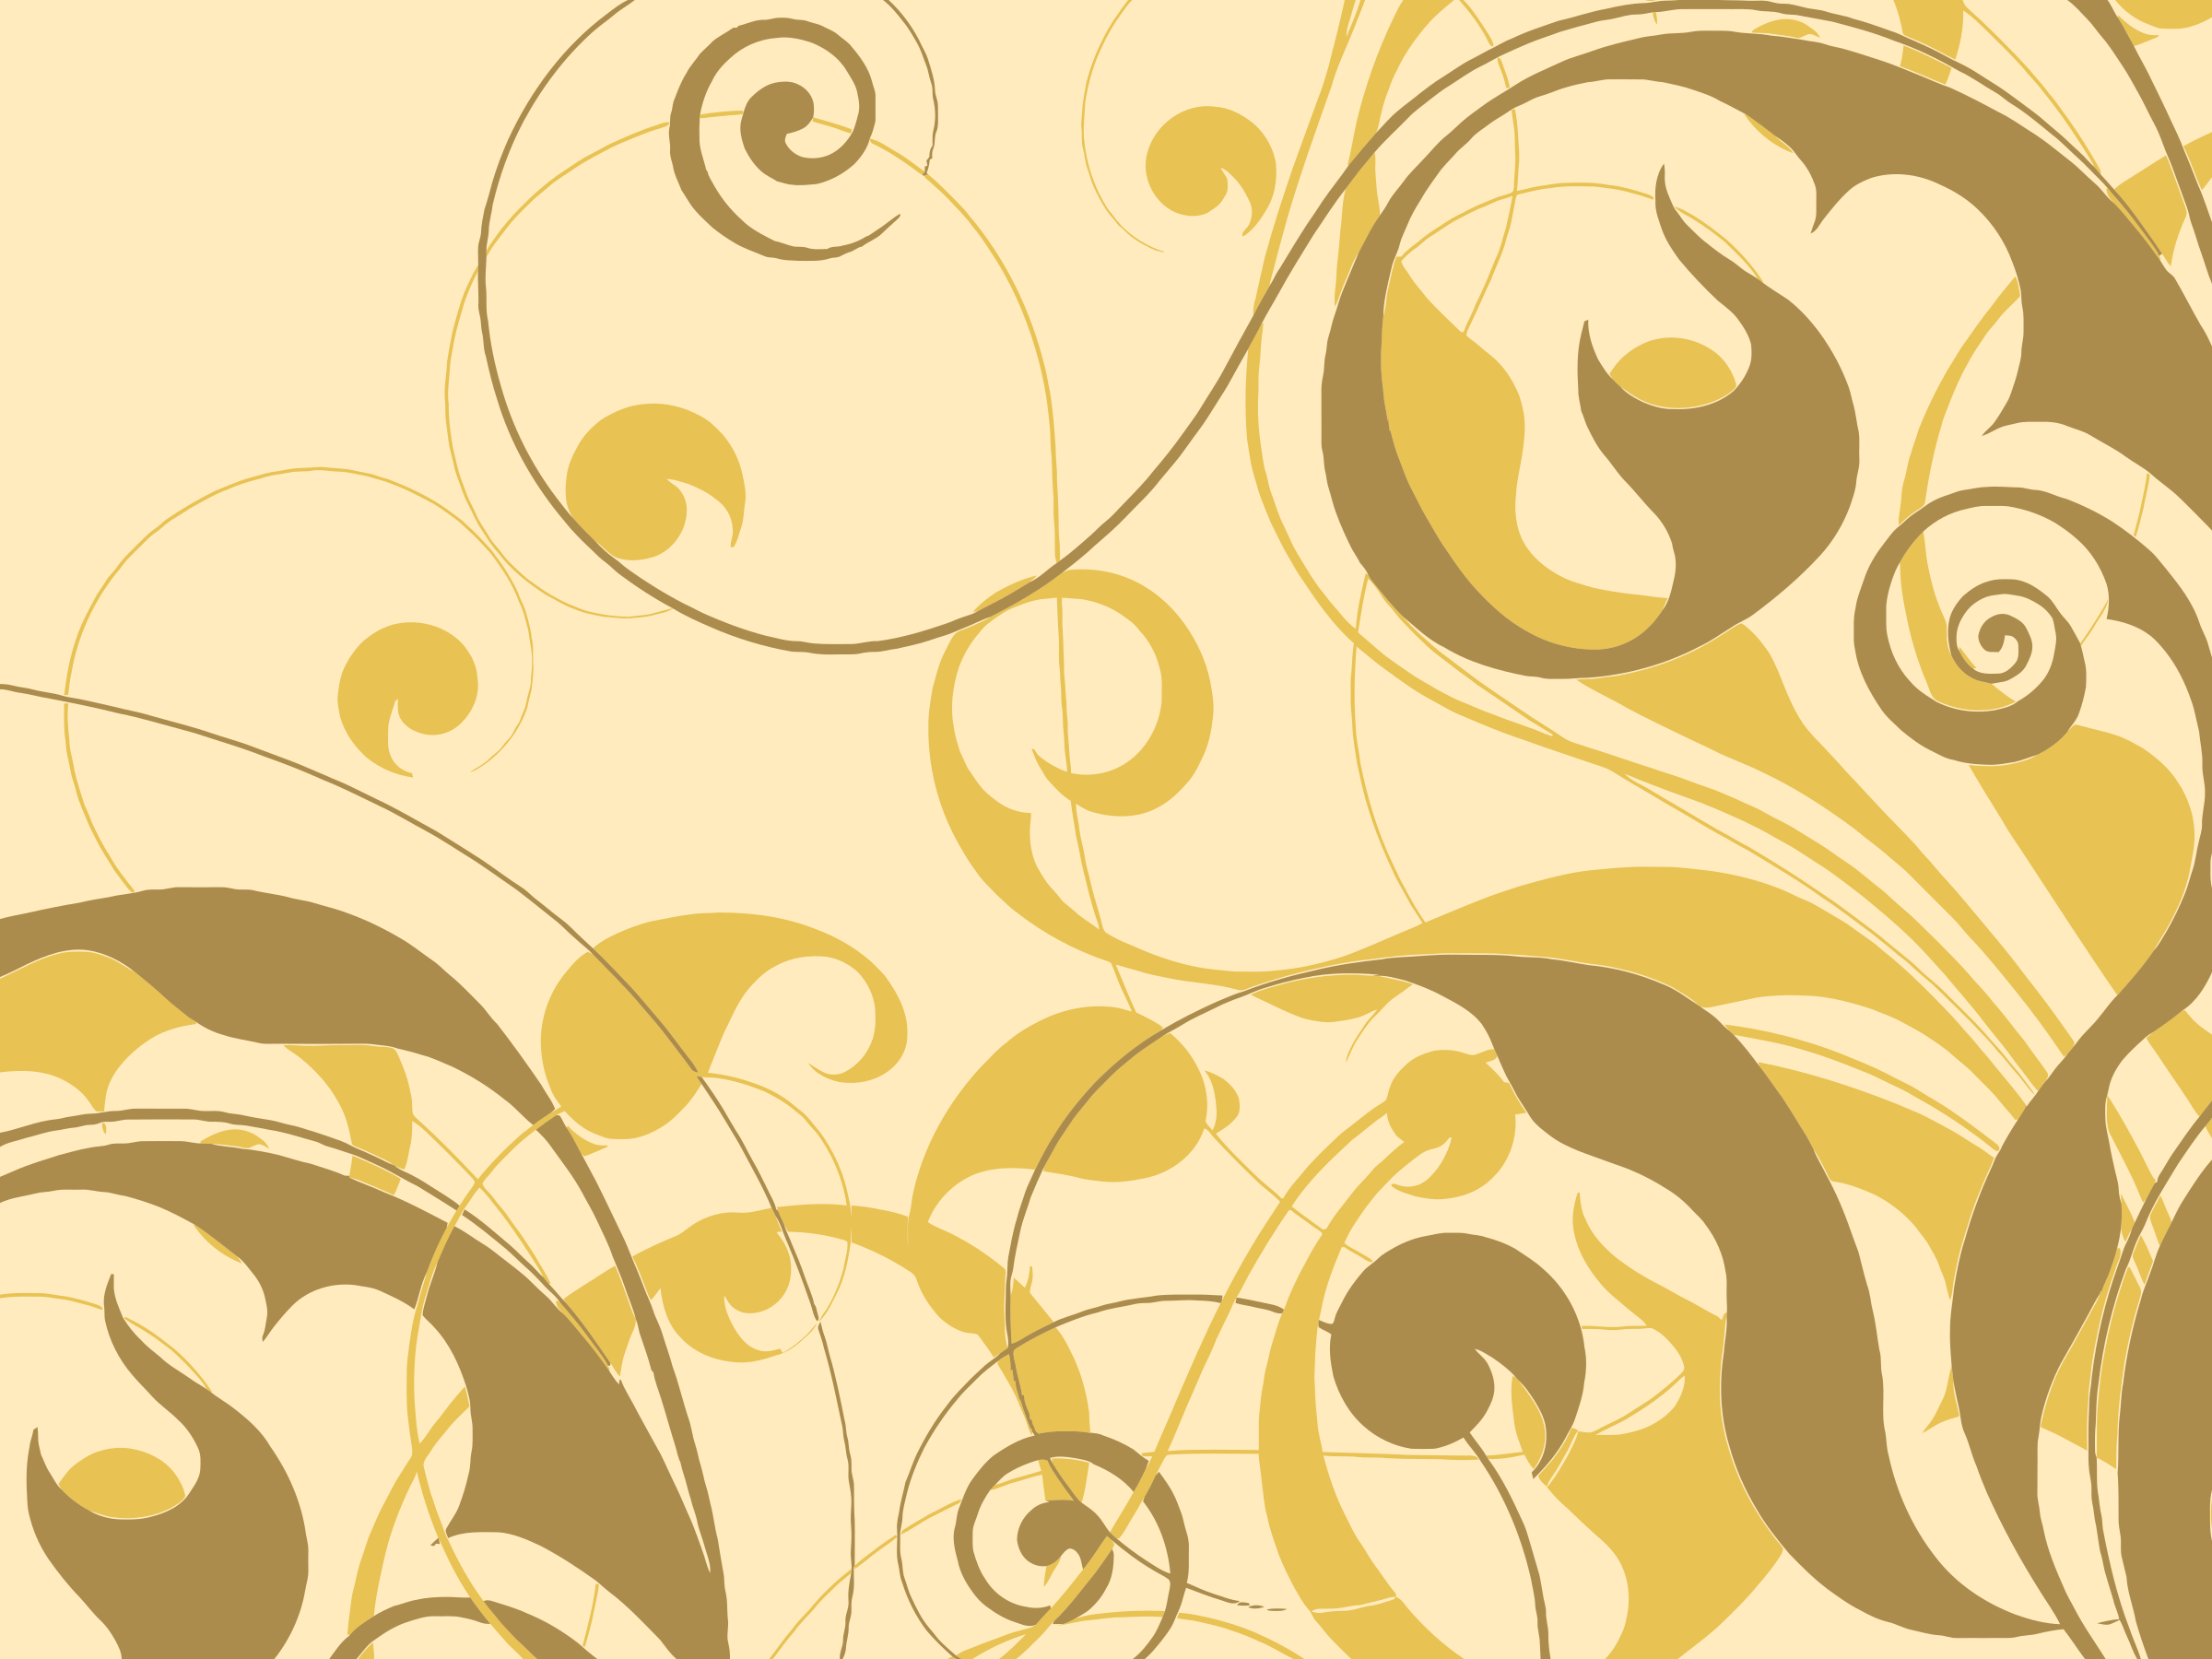 Flourish Background soft 2 by skarmoutsosv